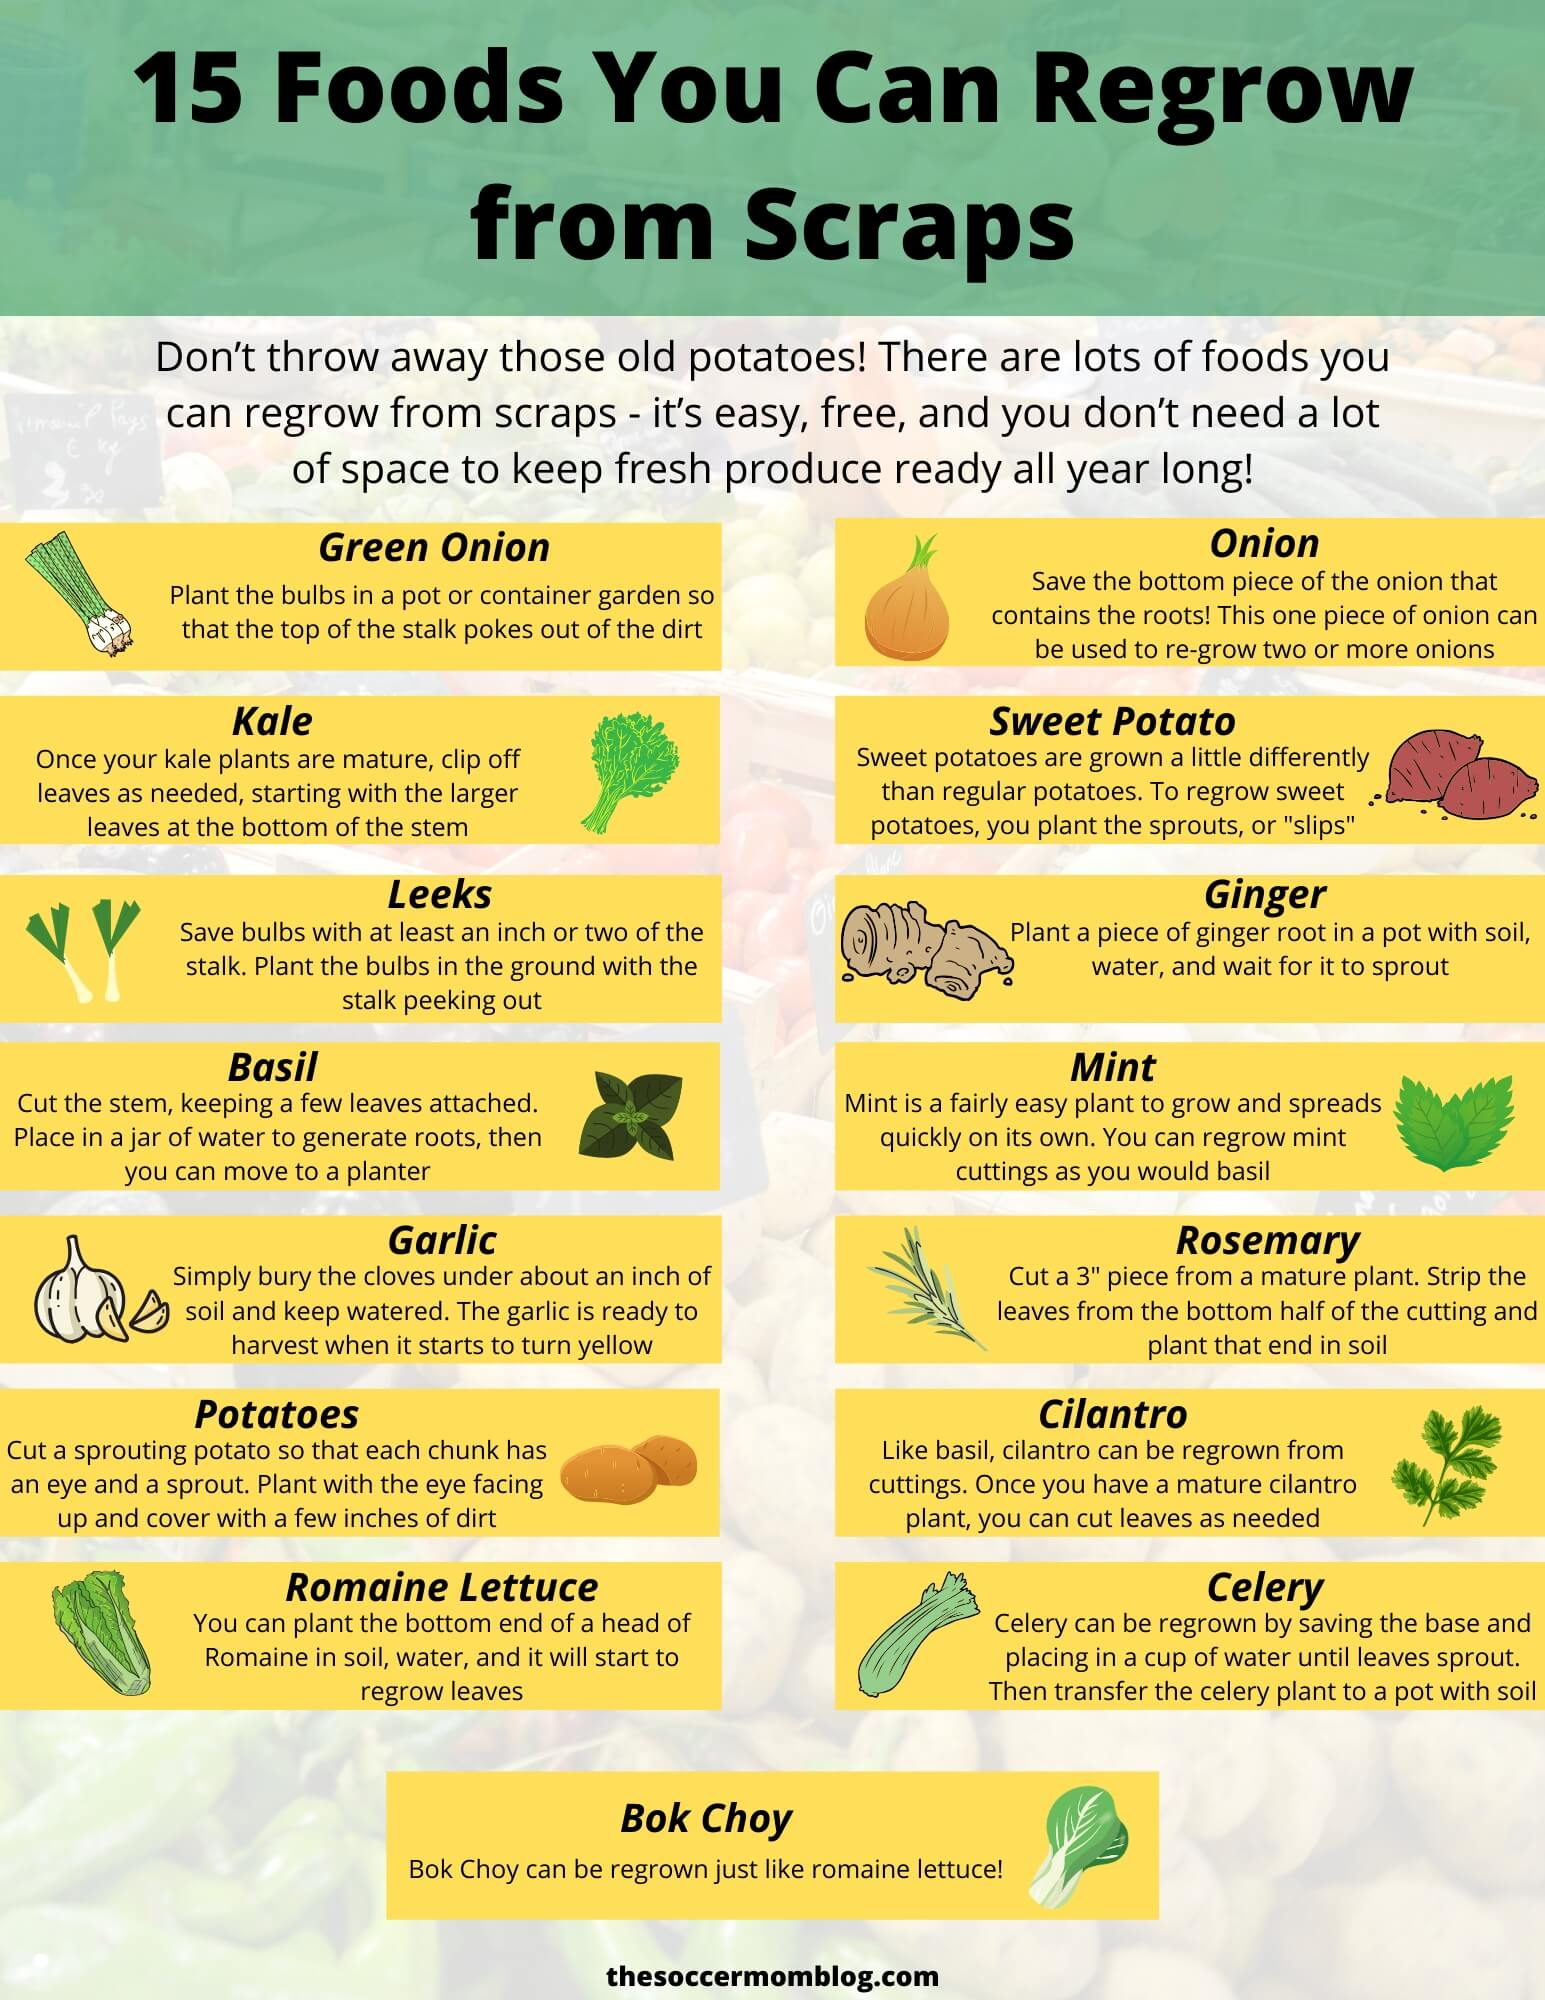 chart showing 15 food plants you can regrow from scraps